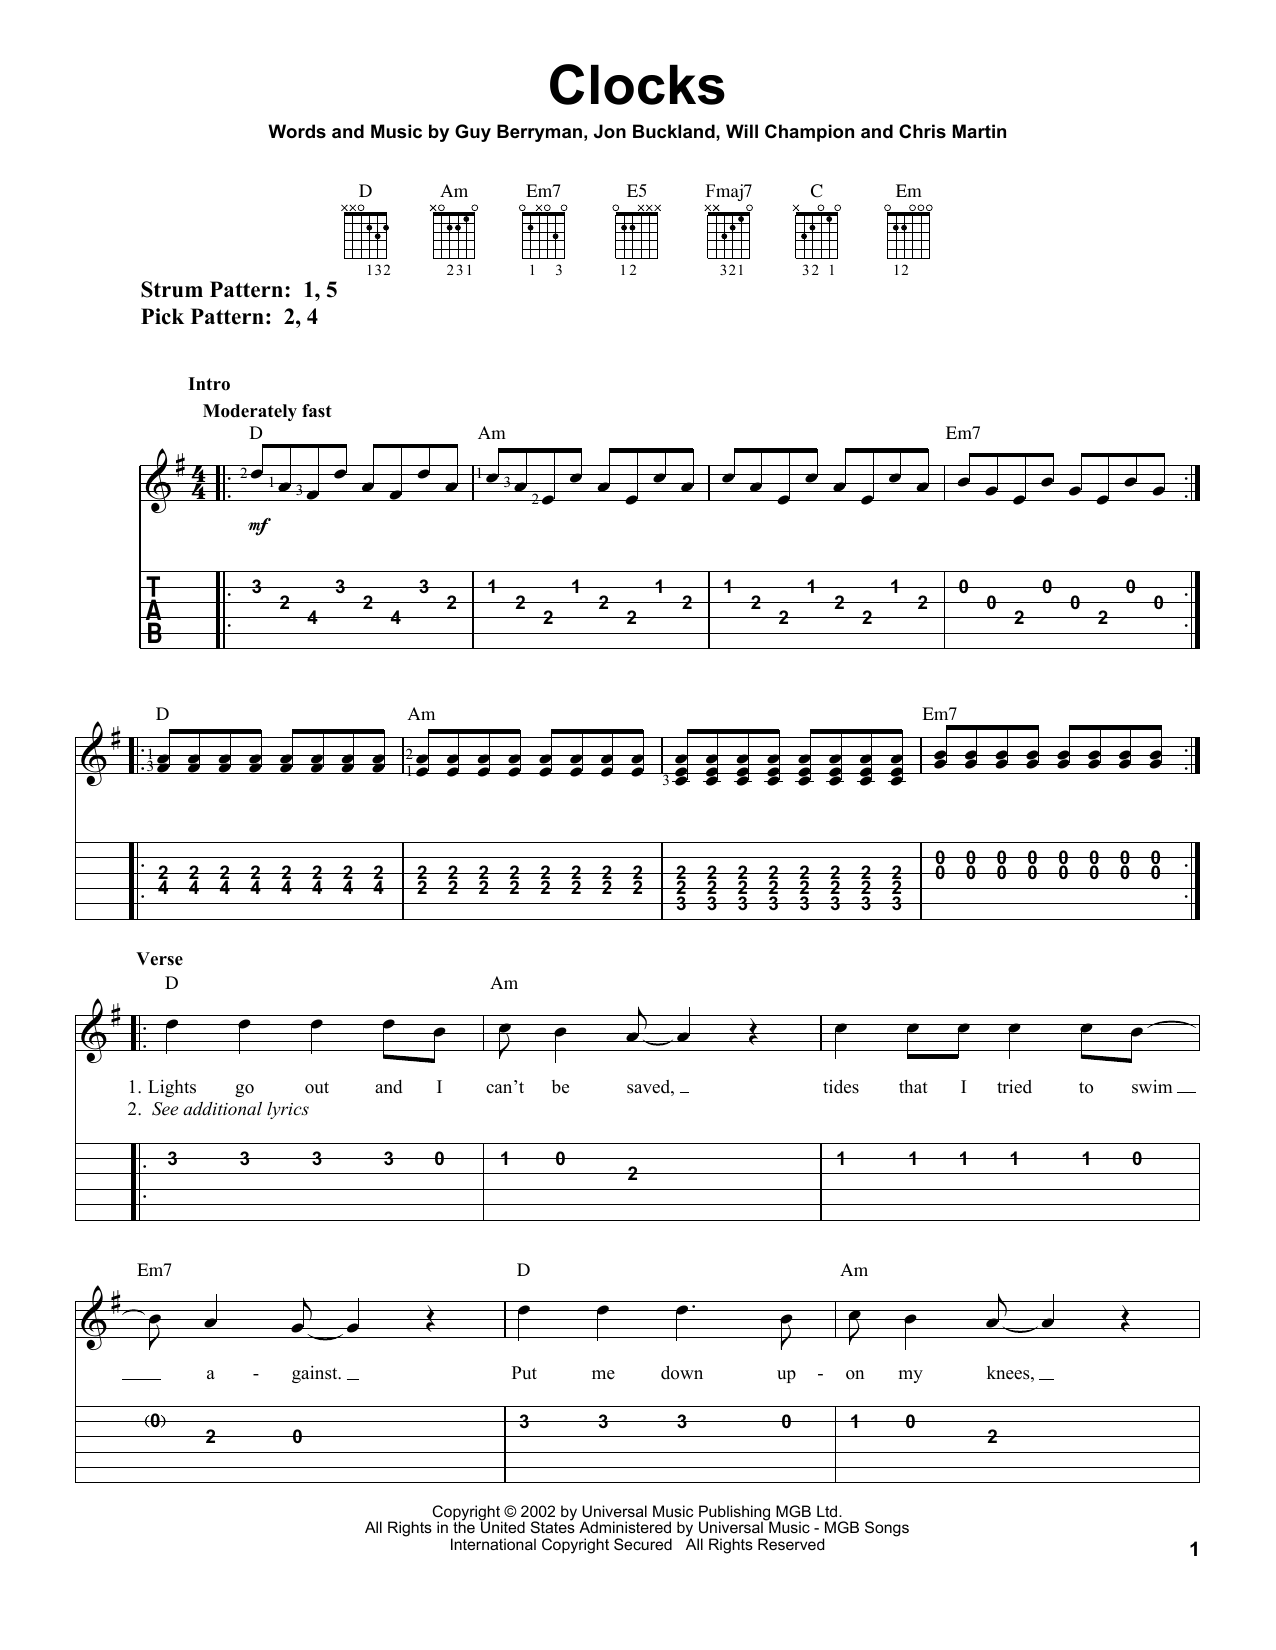 Coldplay Clocks sheet music notes and chords. Download Printable PDF.